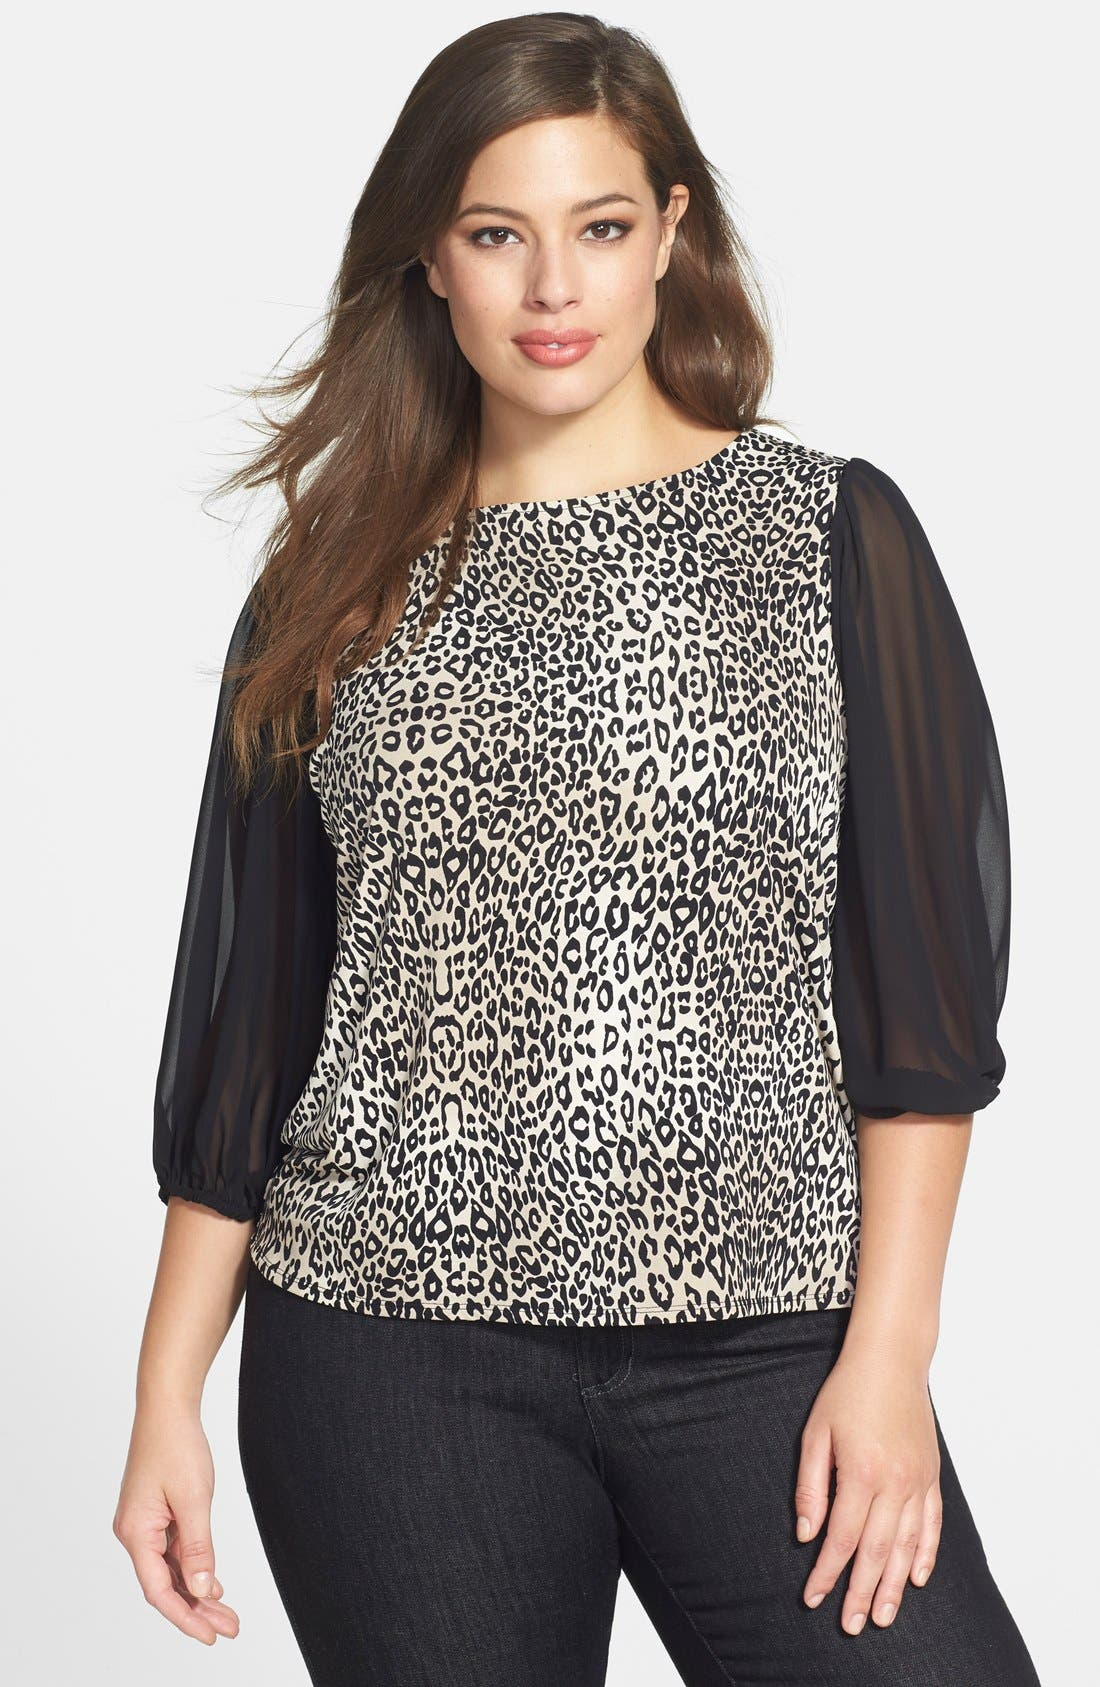 Main Image - Vince Camuto 'Desert Leopard' Chiffon Sleeve Top (Plus Size)